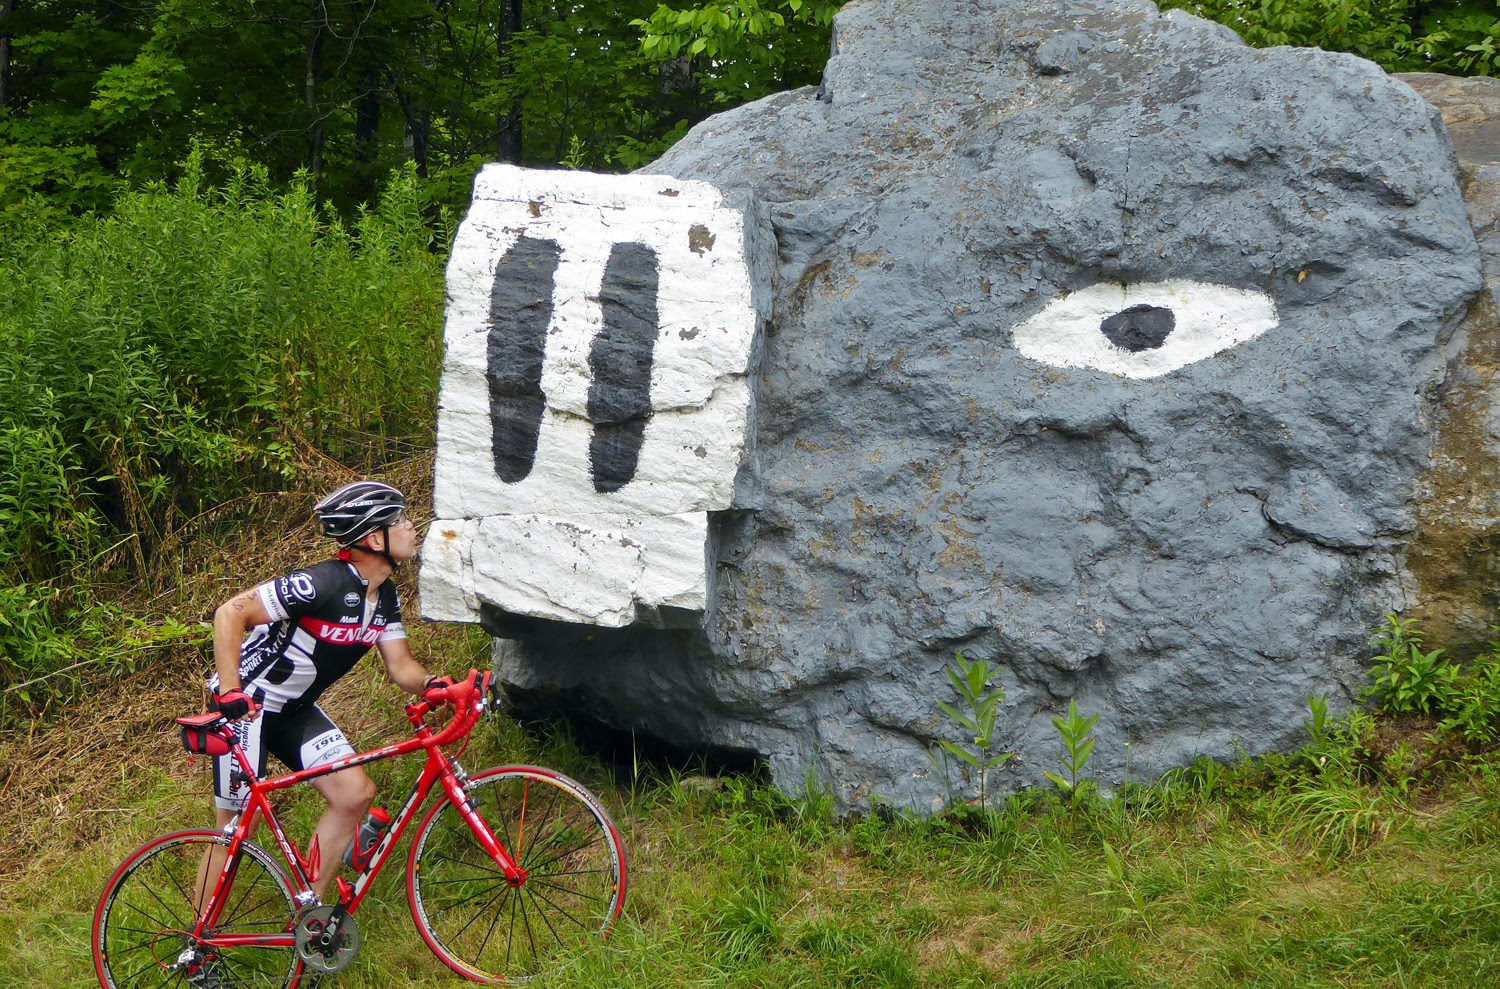 There's nothing like stopping to kiss the big stone pig on Route 30 north of Speculator.   Copyright by Dave Kraus/ Krausgrafik.com